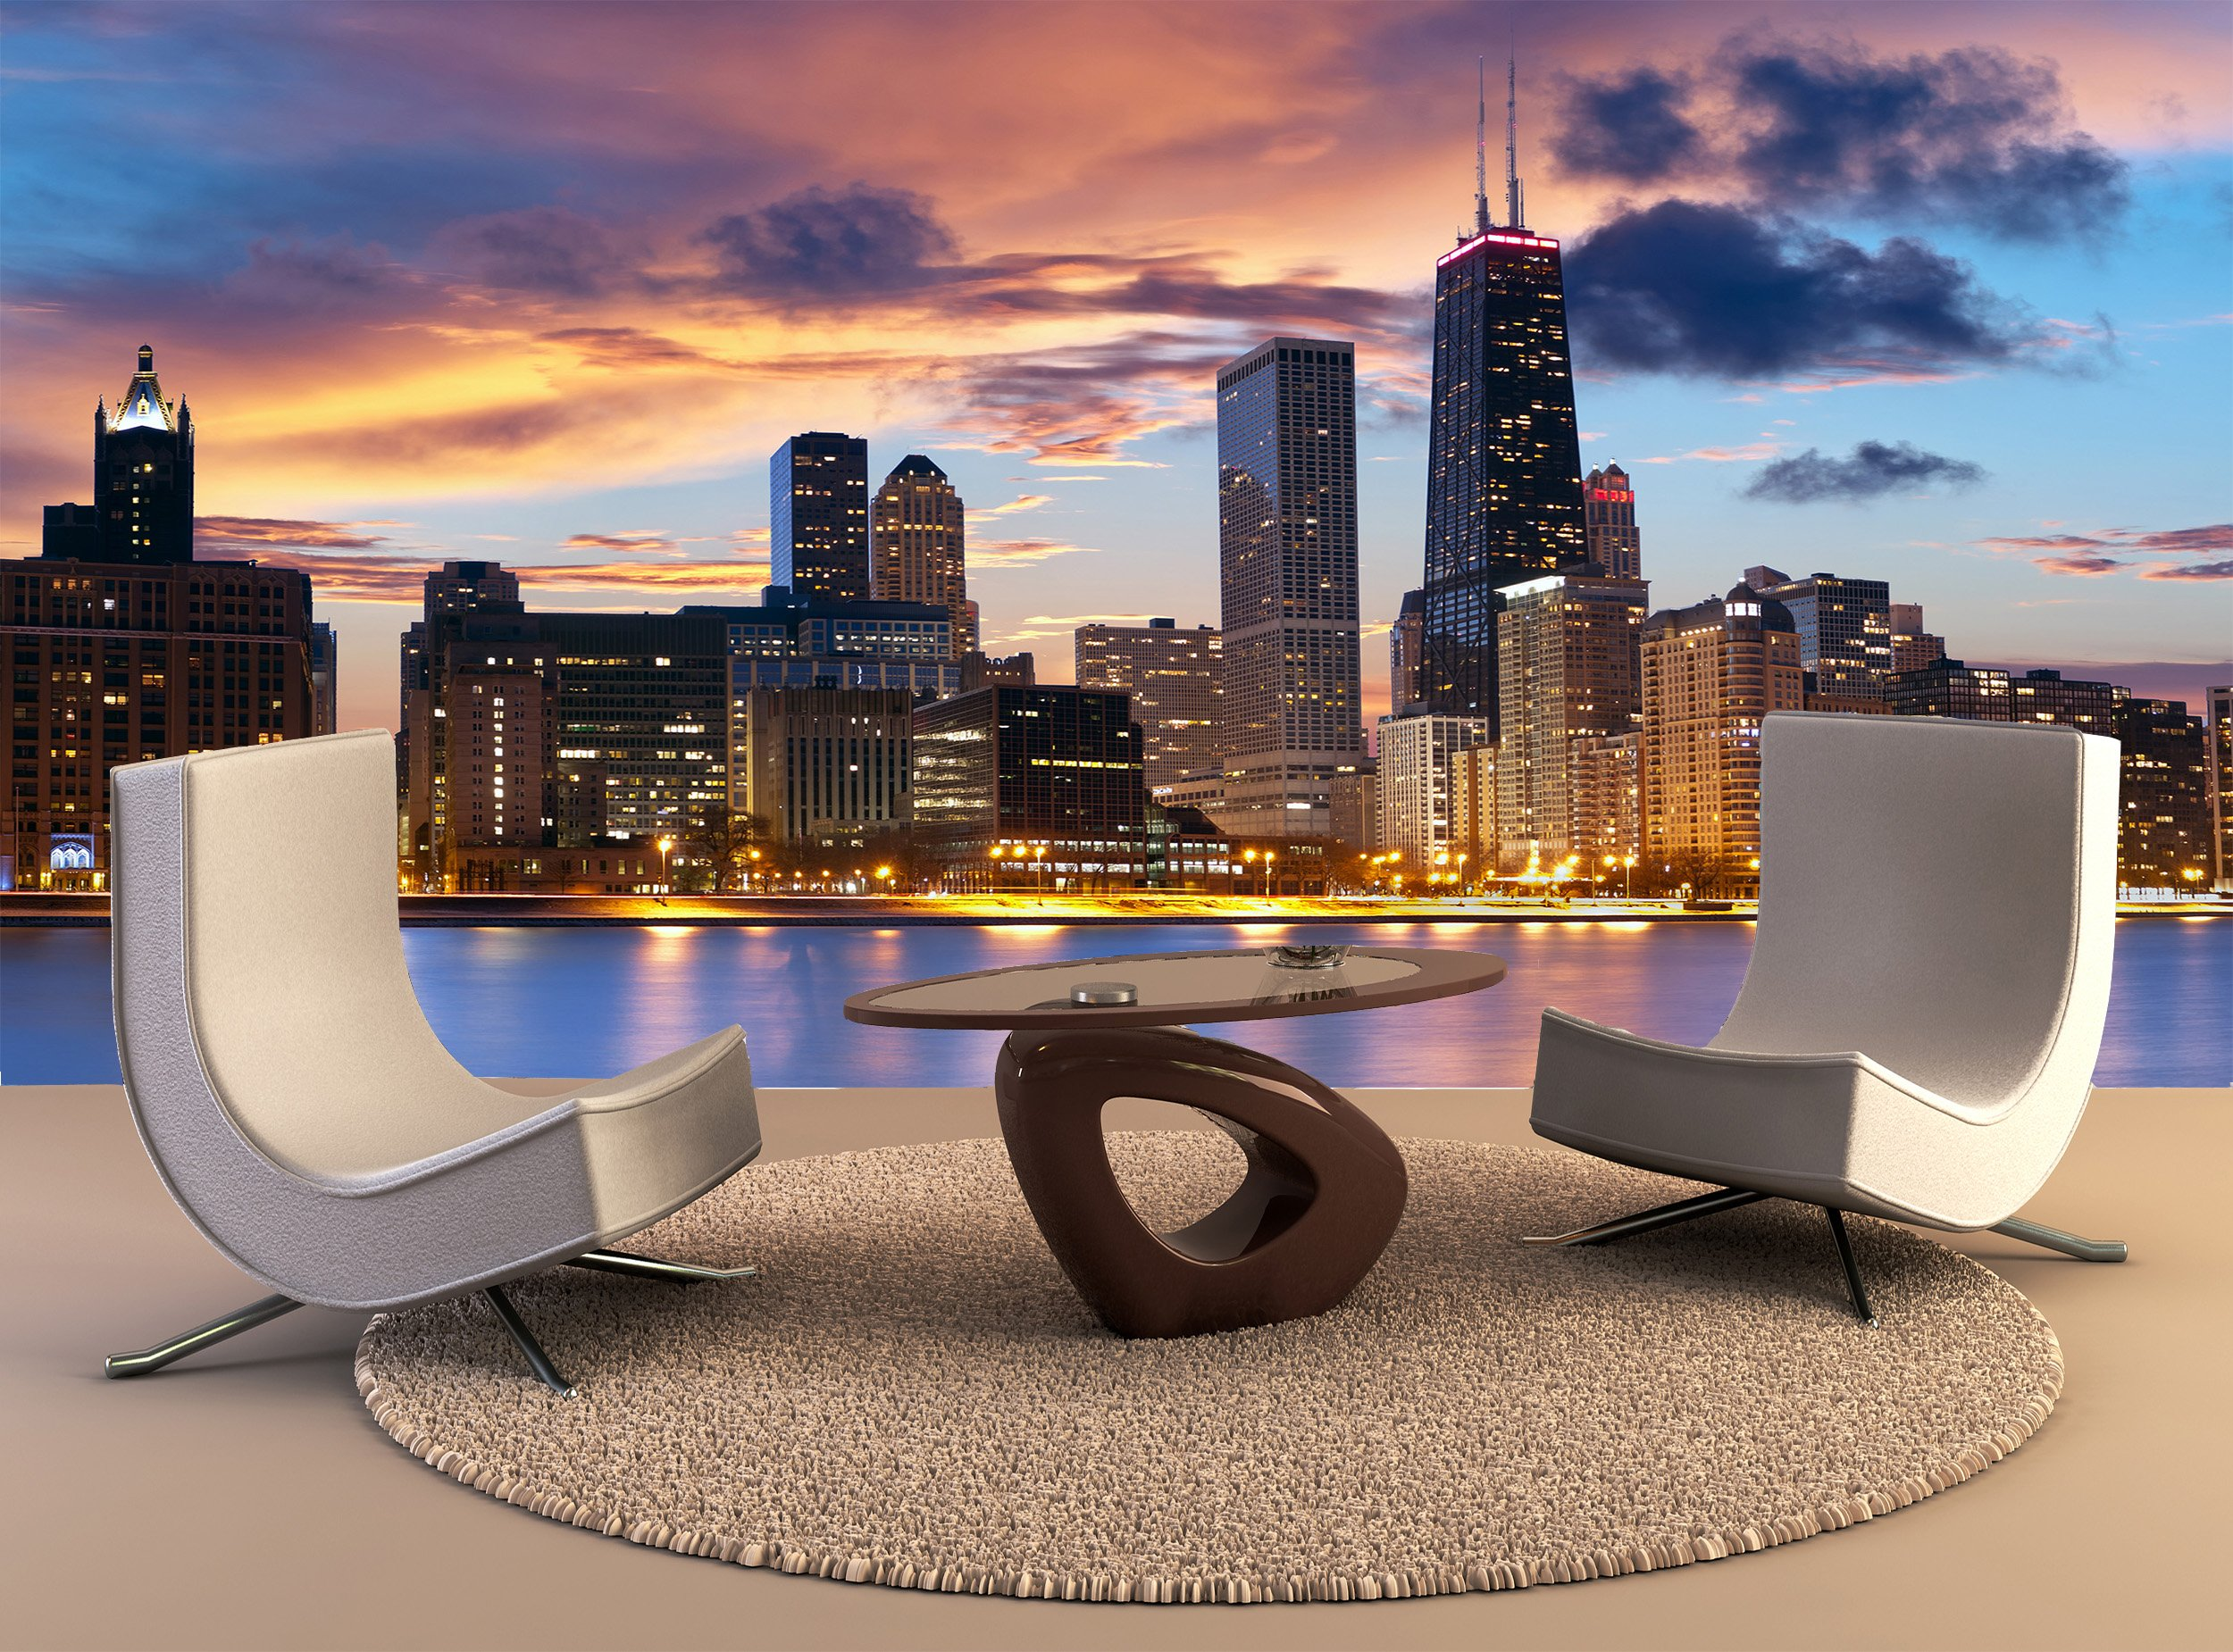 Photo Wall Mural Chicago Skyline Wall Art Decor Photo Wallpaper Poster Print by Premium Wall Murals (Image #1)